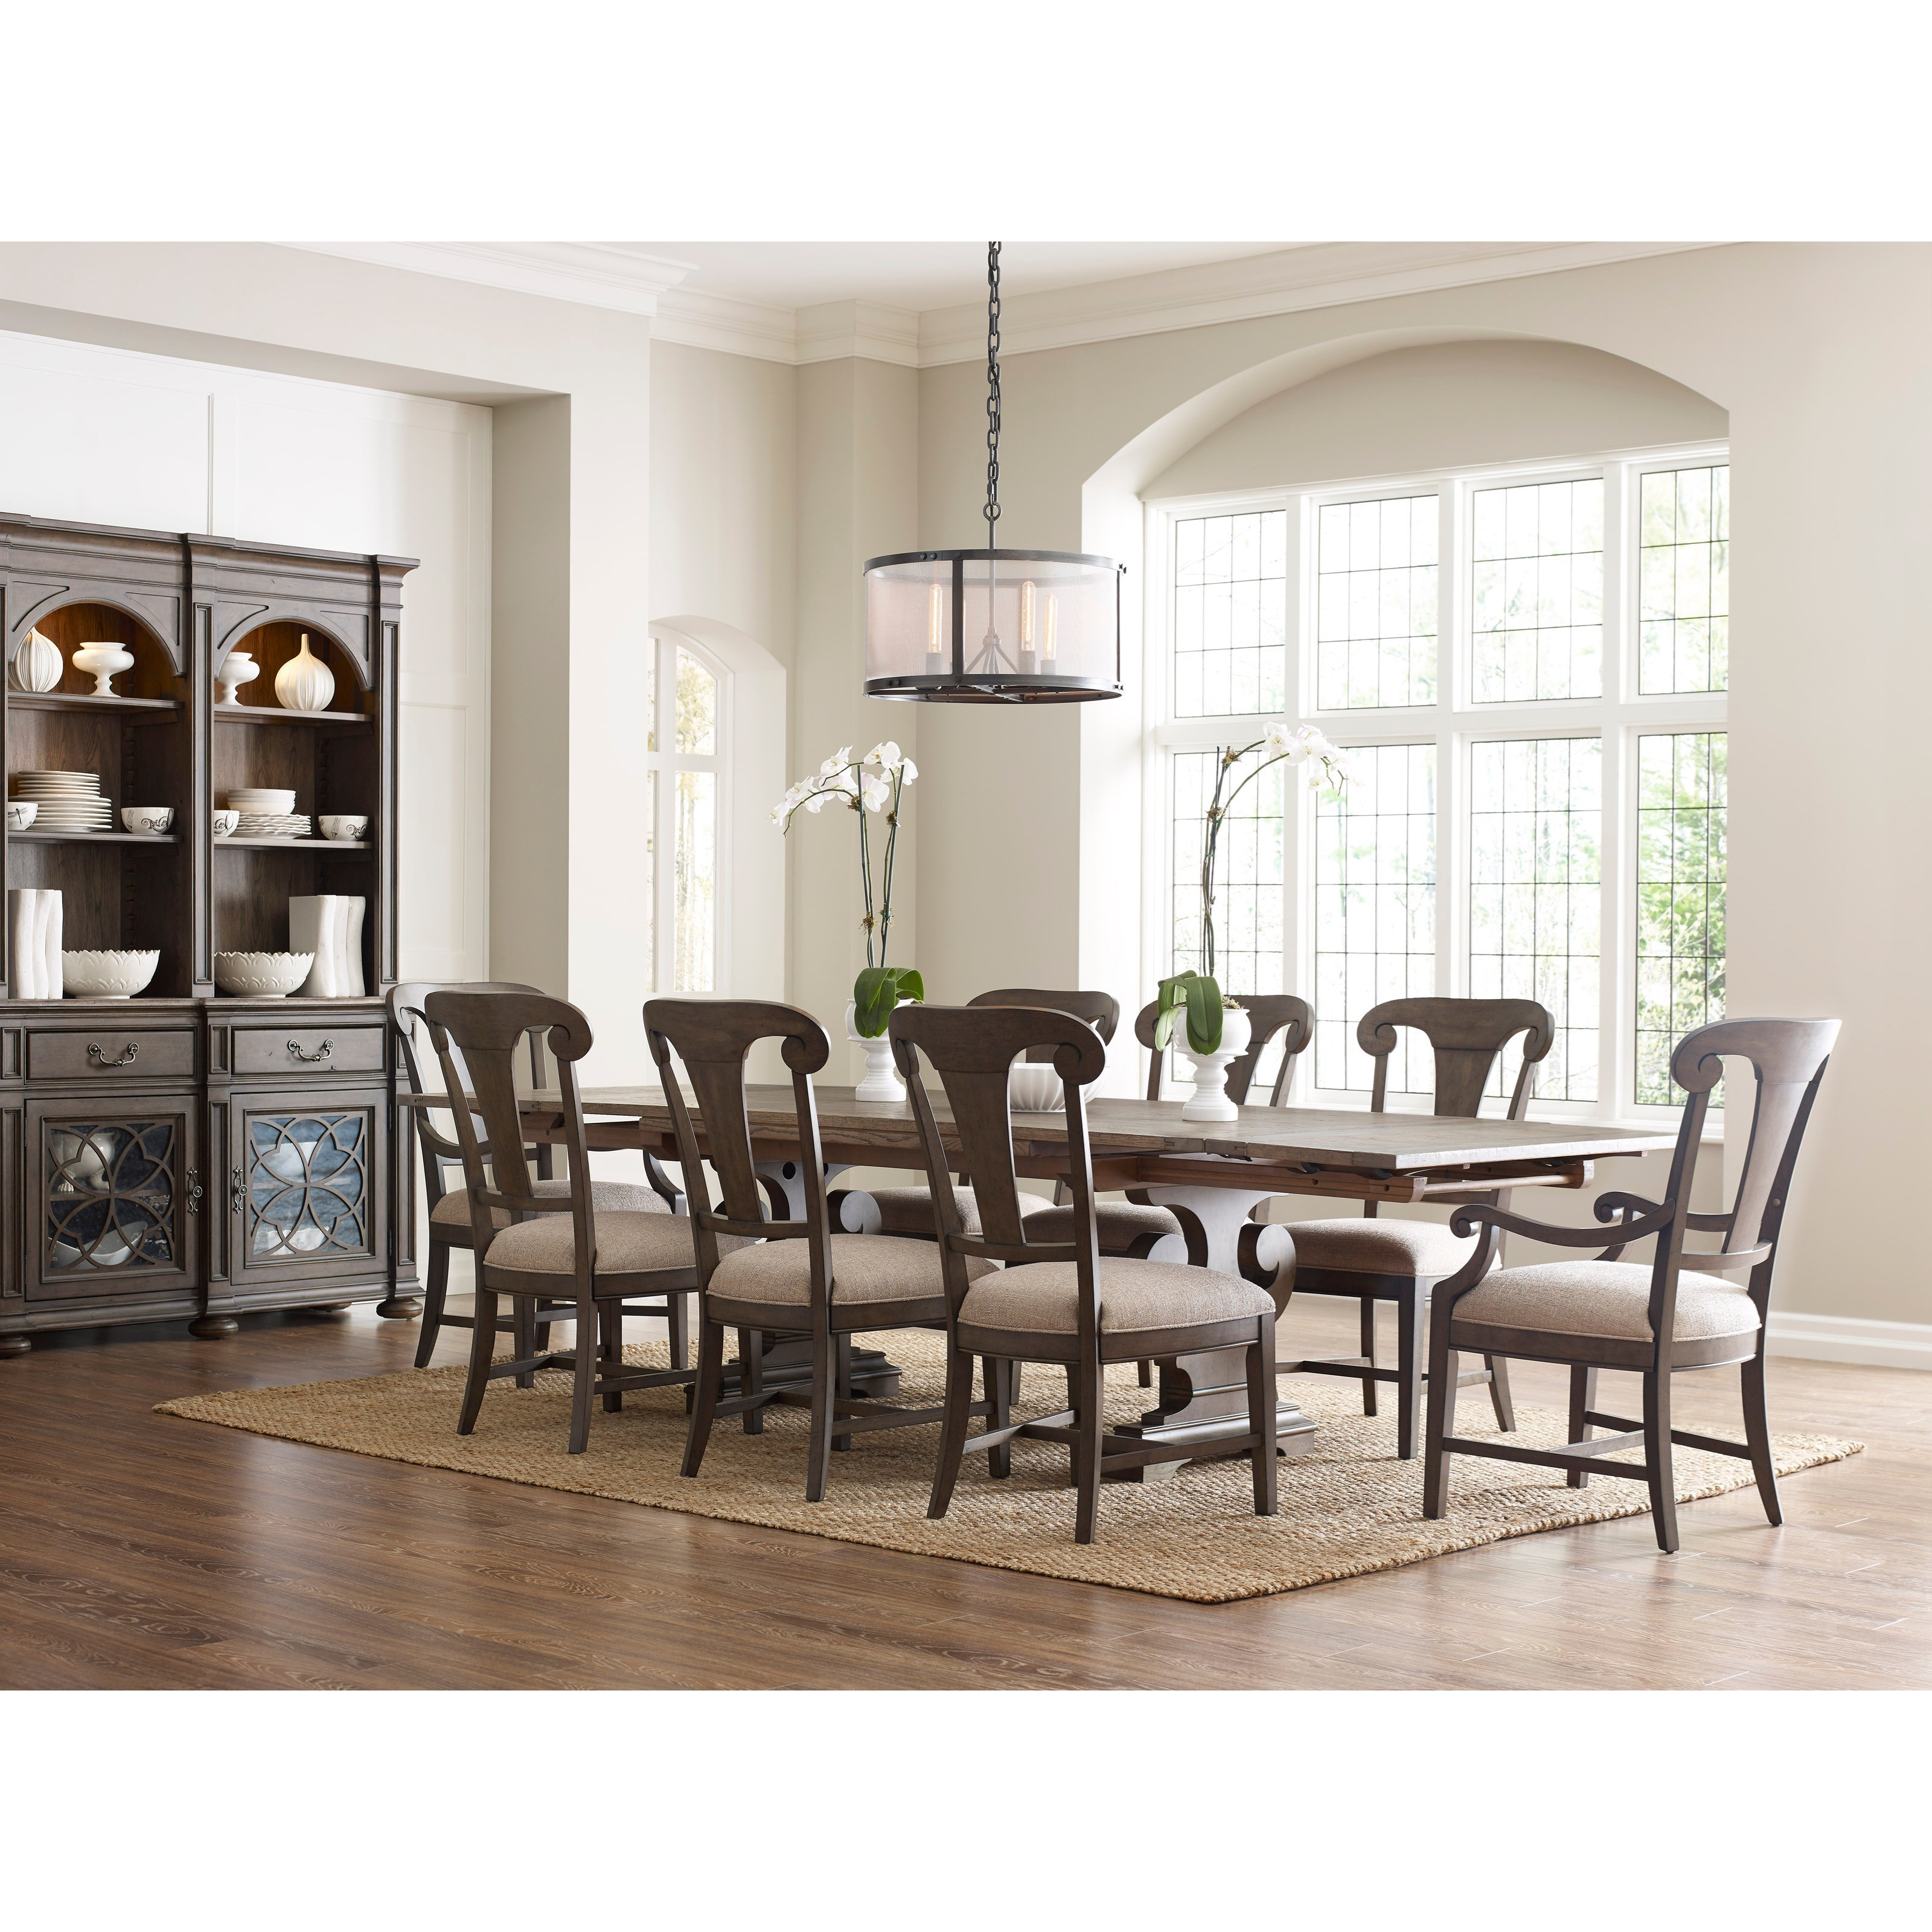 Kincaid Dining Room Set: Kincaid Furniture Greyson Nine Piece Dining Set With Crawford Refectory Table And Fulton Chairs